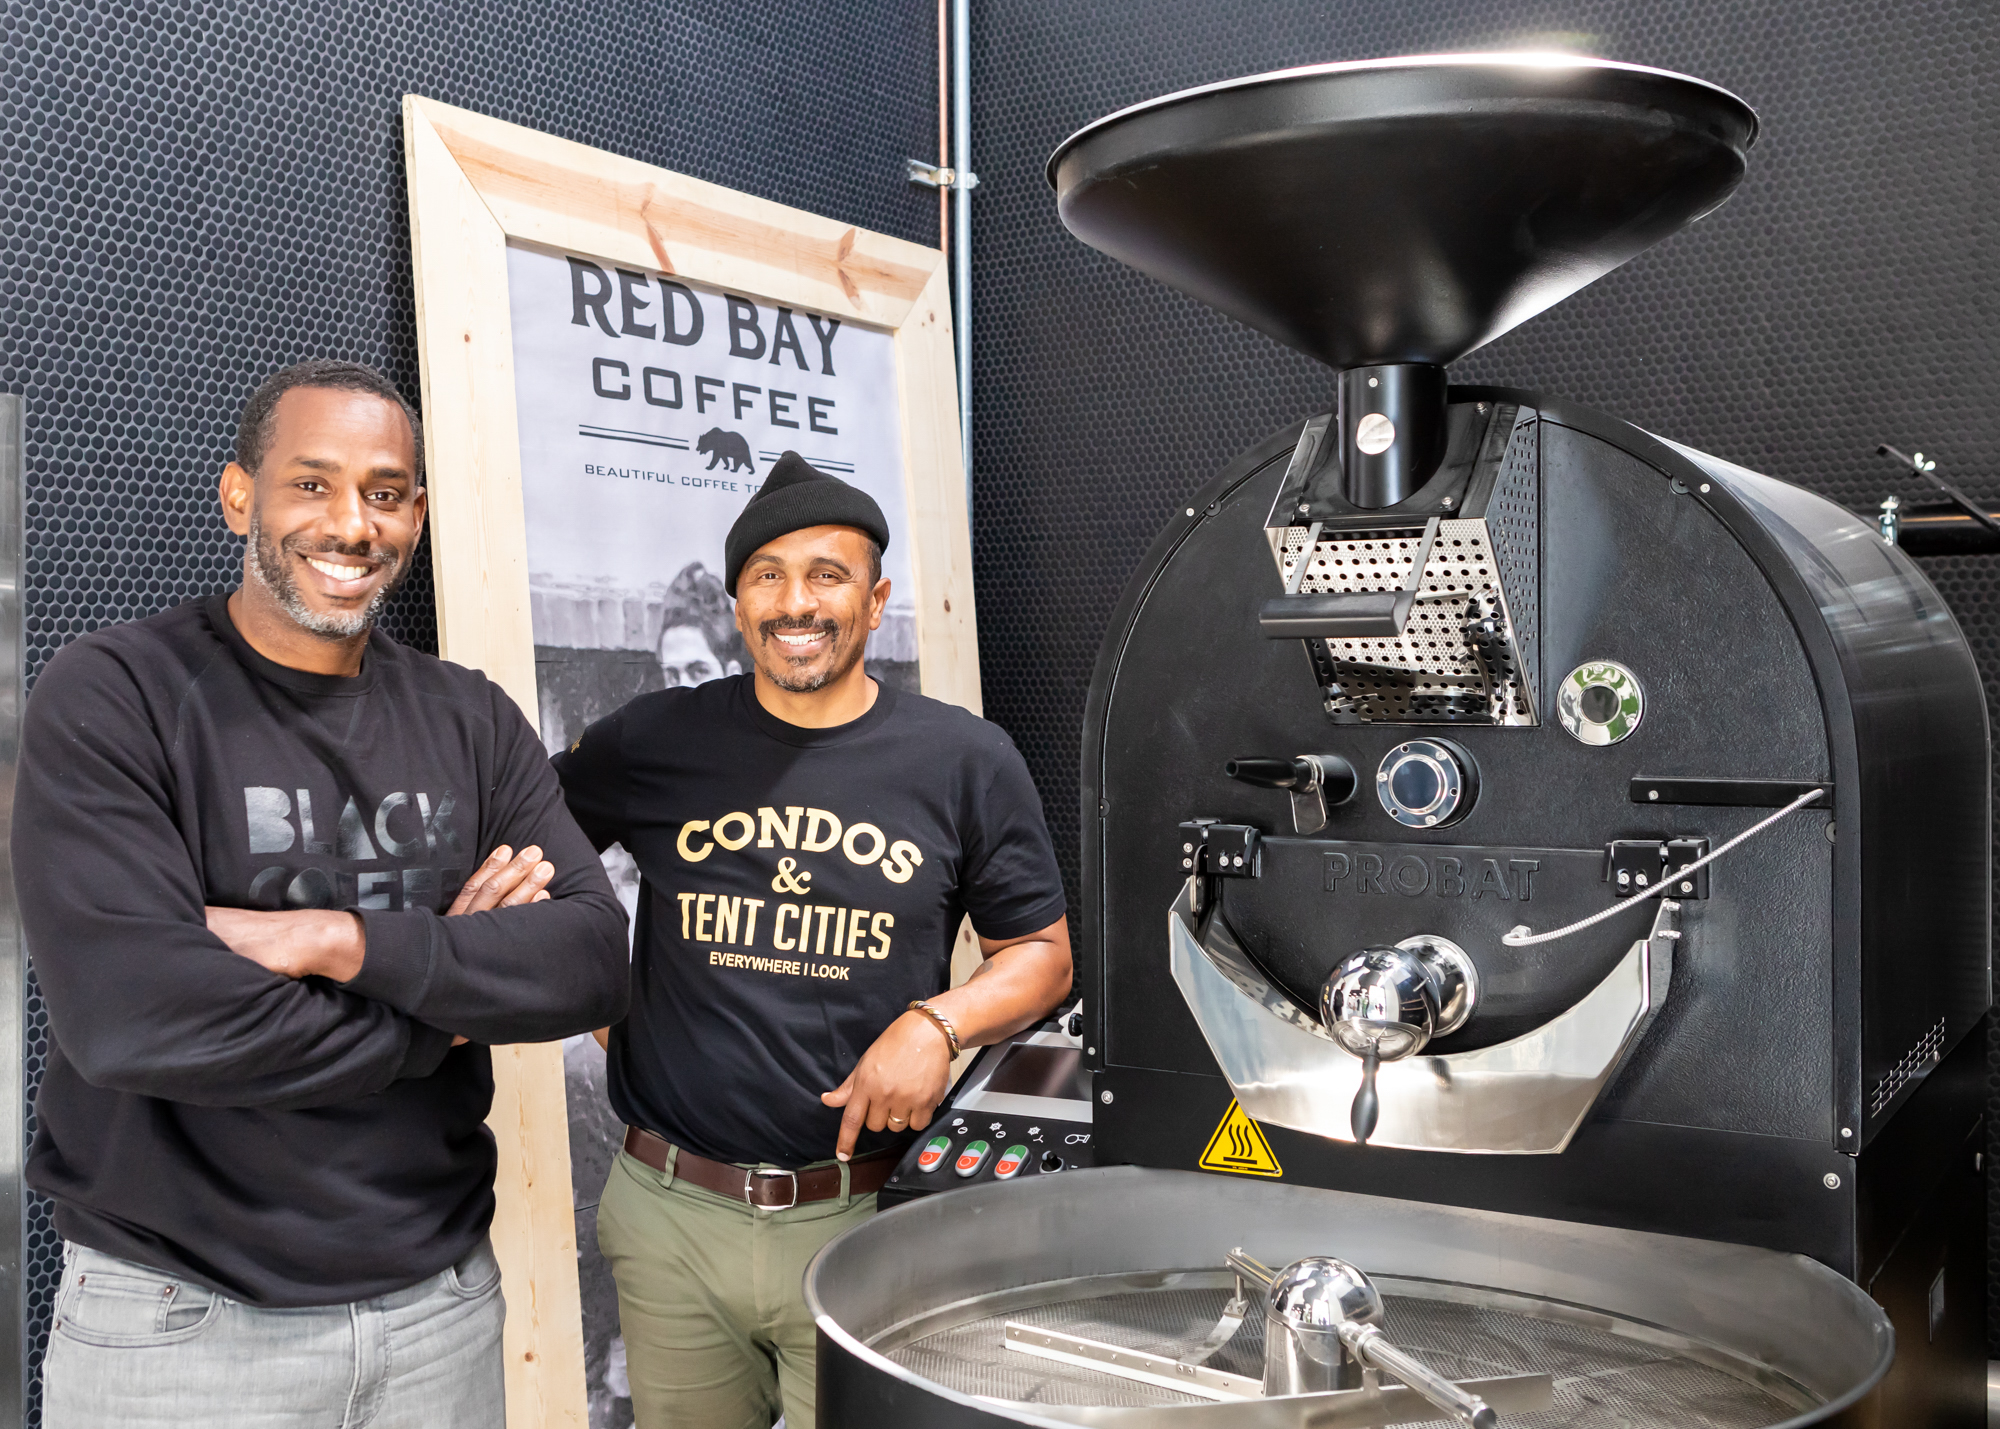 Black-Owned Oakland Coffee Roaster Announces Big New Headquarters